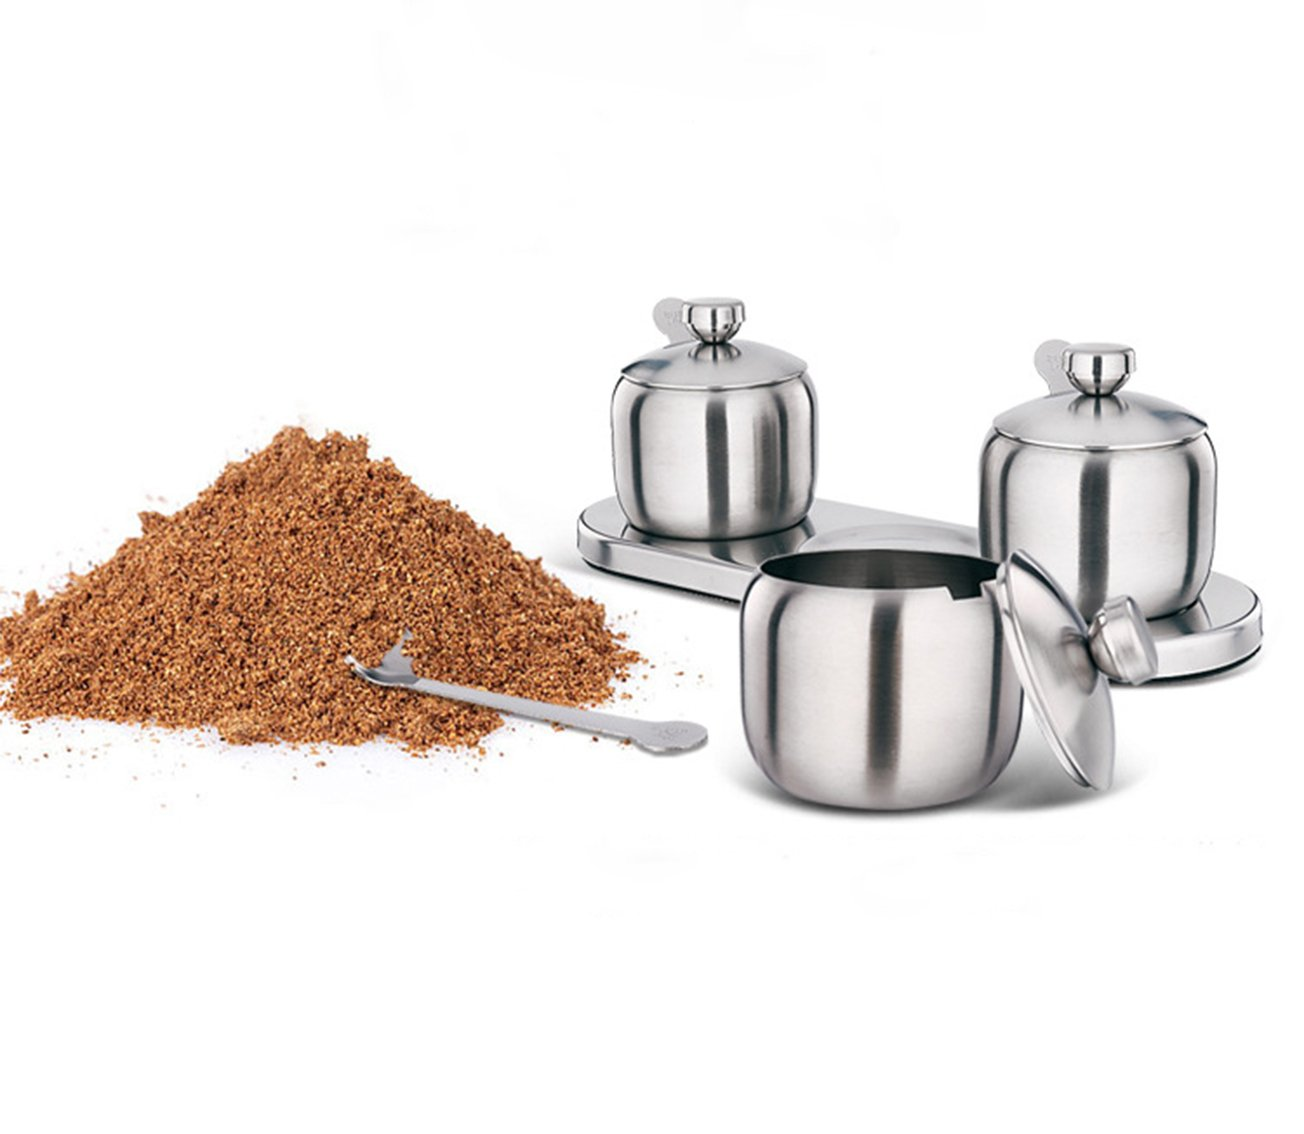 Tenta Kitchen 18/8 Stainless Steel Seasoning Containers Set Spice Jar Spice Rack Condiment Cruet Bottle Salt Pepper Sugar Storage Organizers with 3 Serving Spoons And Non-slip Base